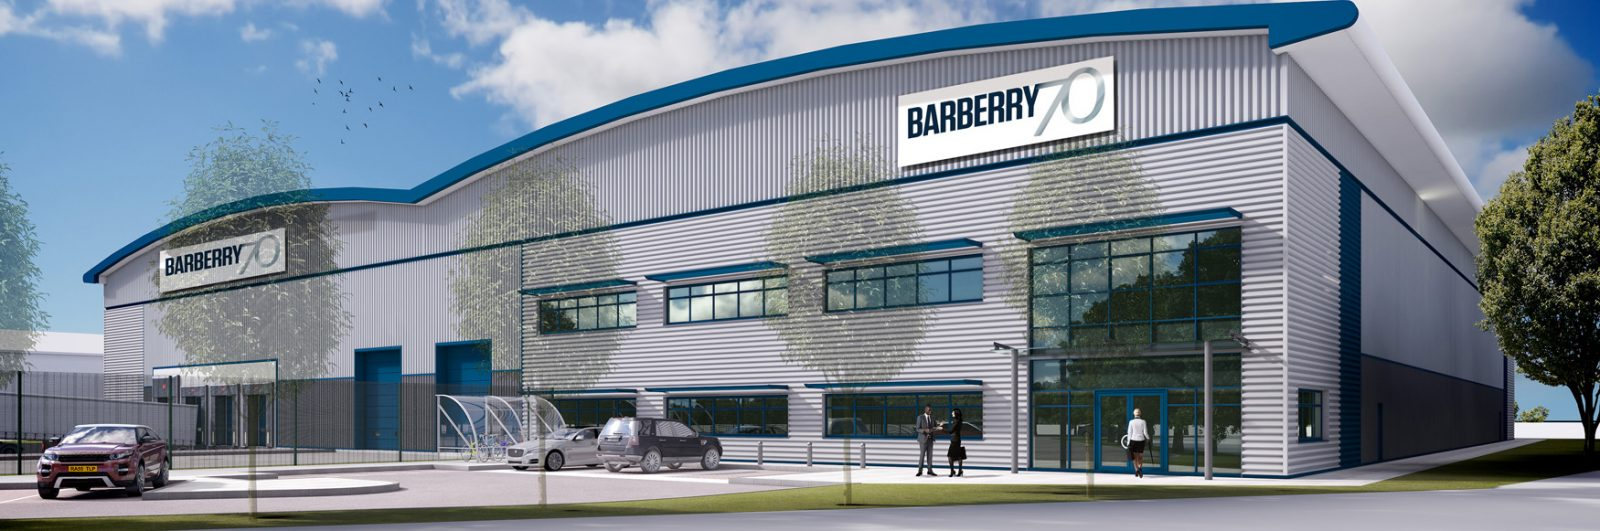 Barberry developing speculative warehouse in Daventry